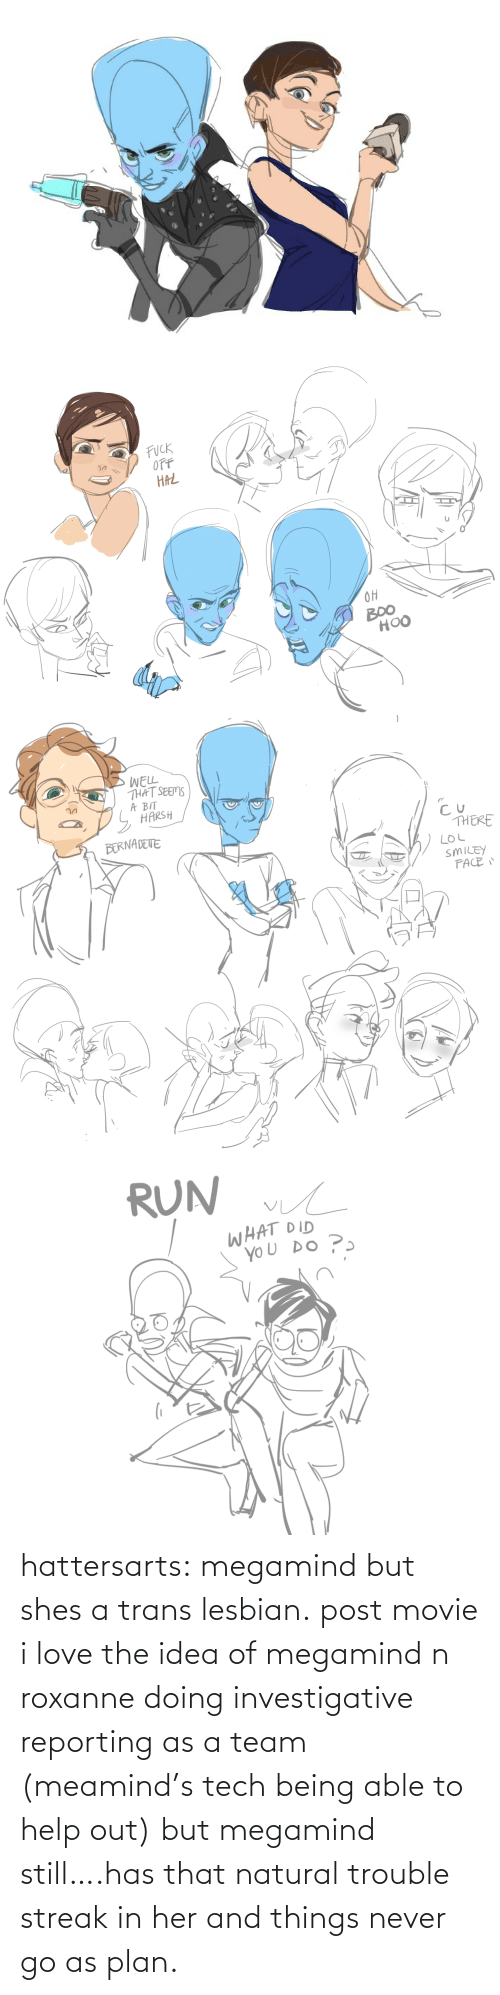 trans: hattersarts:  megamind but shes a trans lesbian.  post movie i love the idea of megamind n roxanne doing investigative reporting as a team (meamind's tech being able to help out) but megamind still….has that natural trouble streak in her and things never go as plan.